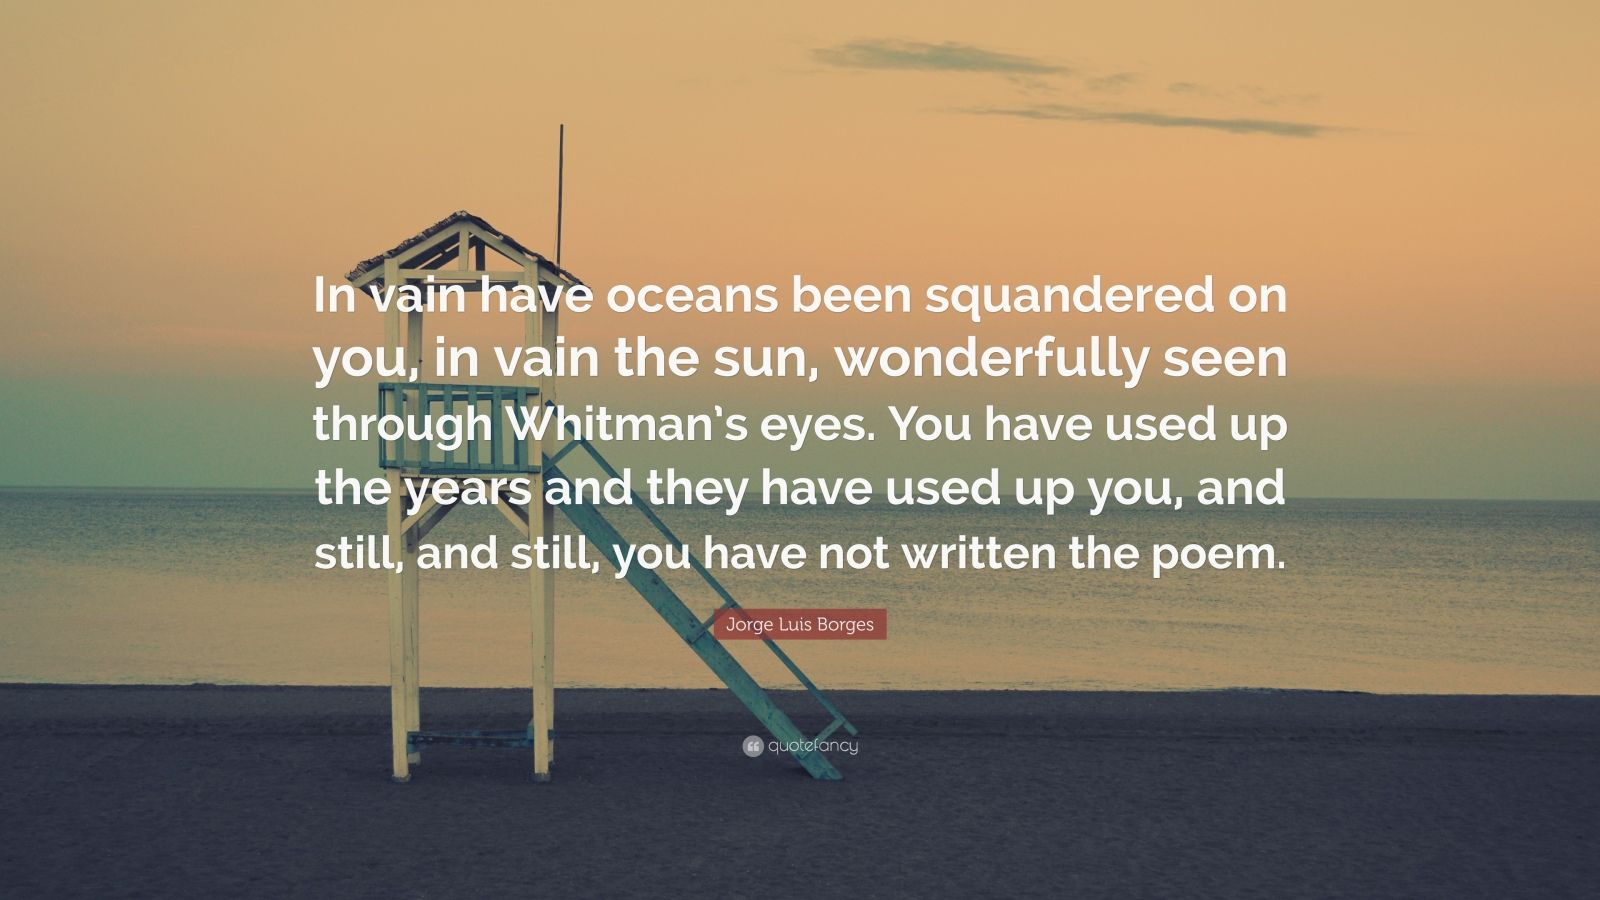 "Jorge Luis Borges Quote: ""In vain have oceans been squandered on you, in vain the sun, wonderfully seen through Whitman's eyes. You have used up the years and they have used up you, and still, and still, you have not written the poem."""